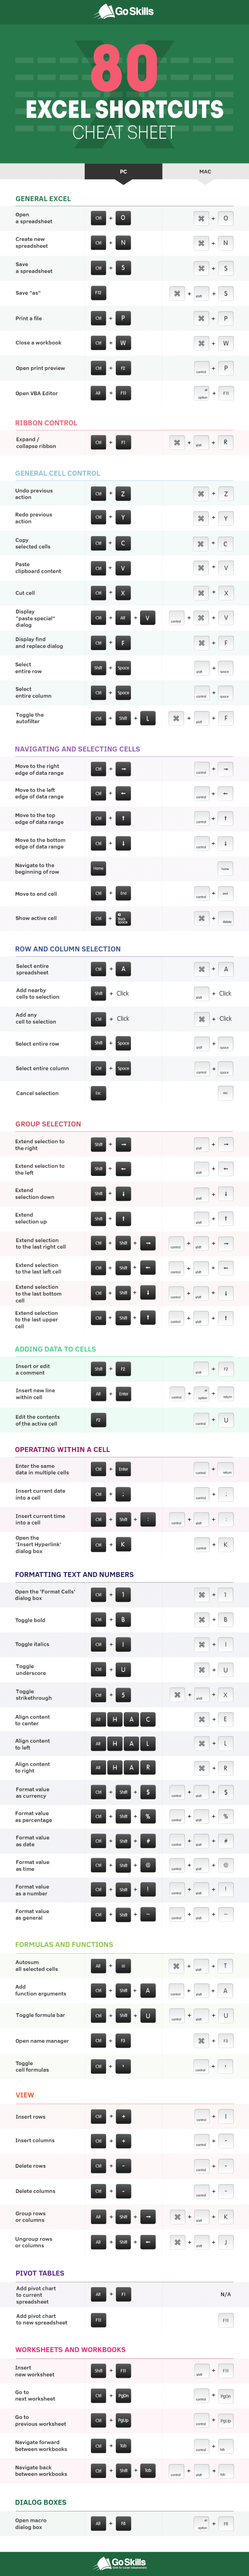 Excel shortcuts from GoSkills.com